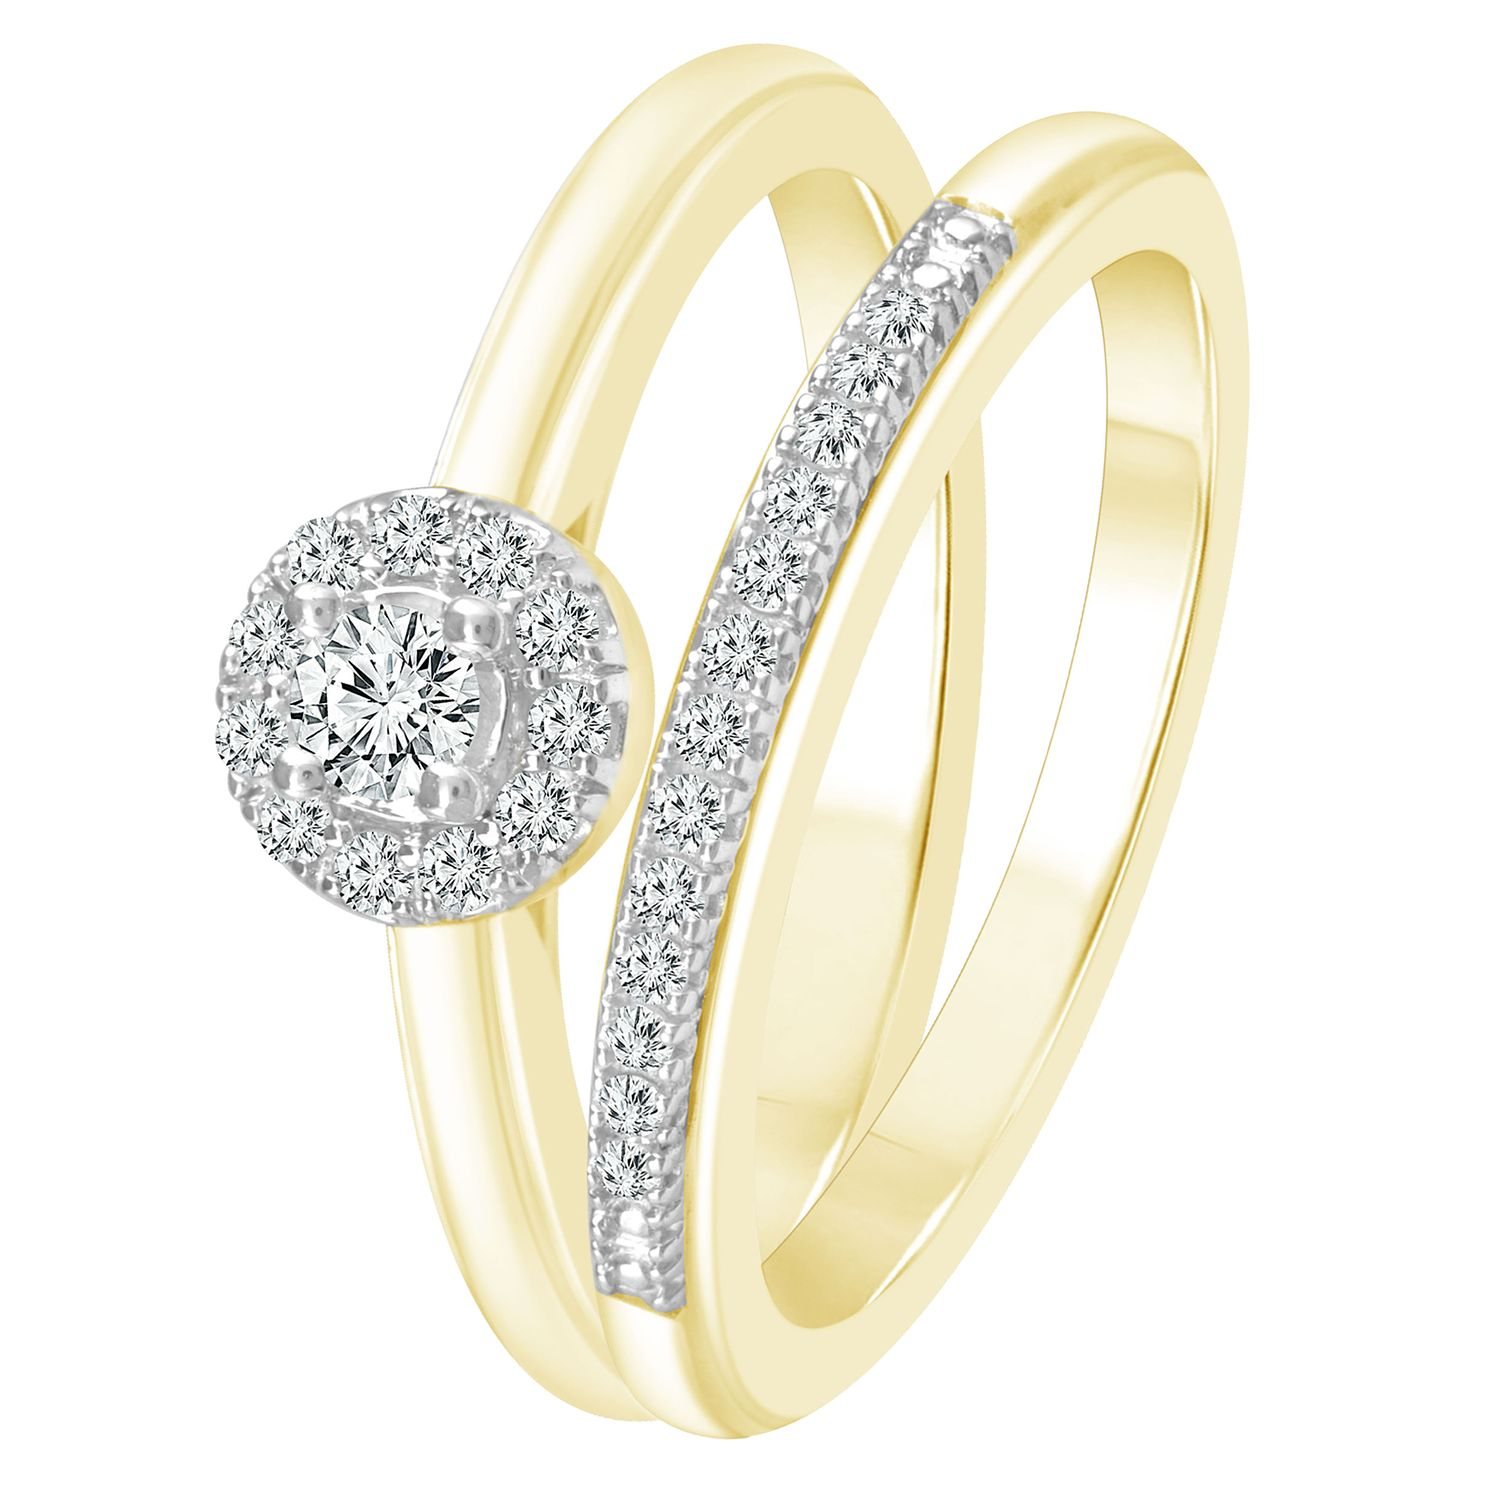 Perfect Fit 9ct Yellow Gold 1/5ct Round Diamond Bridal Set - Product number 4089243